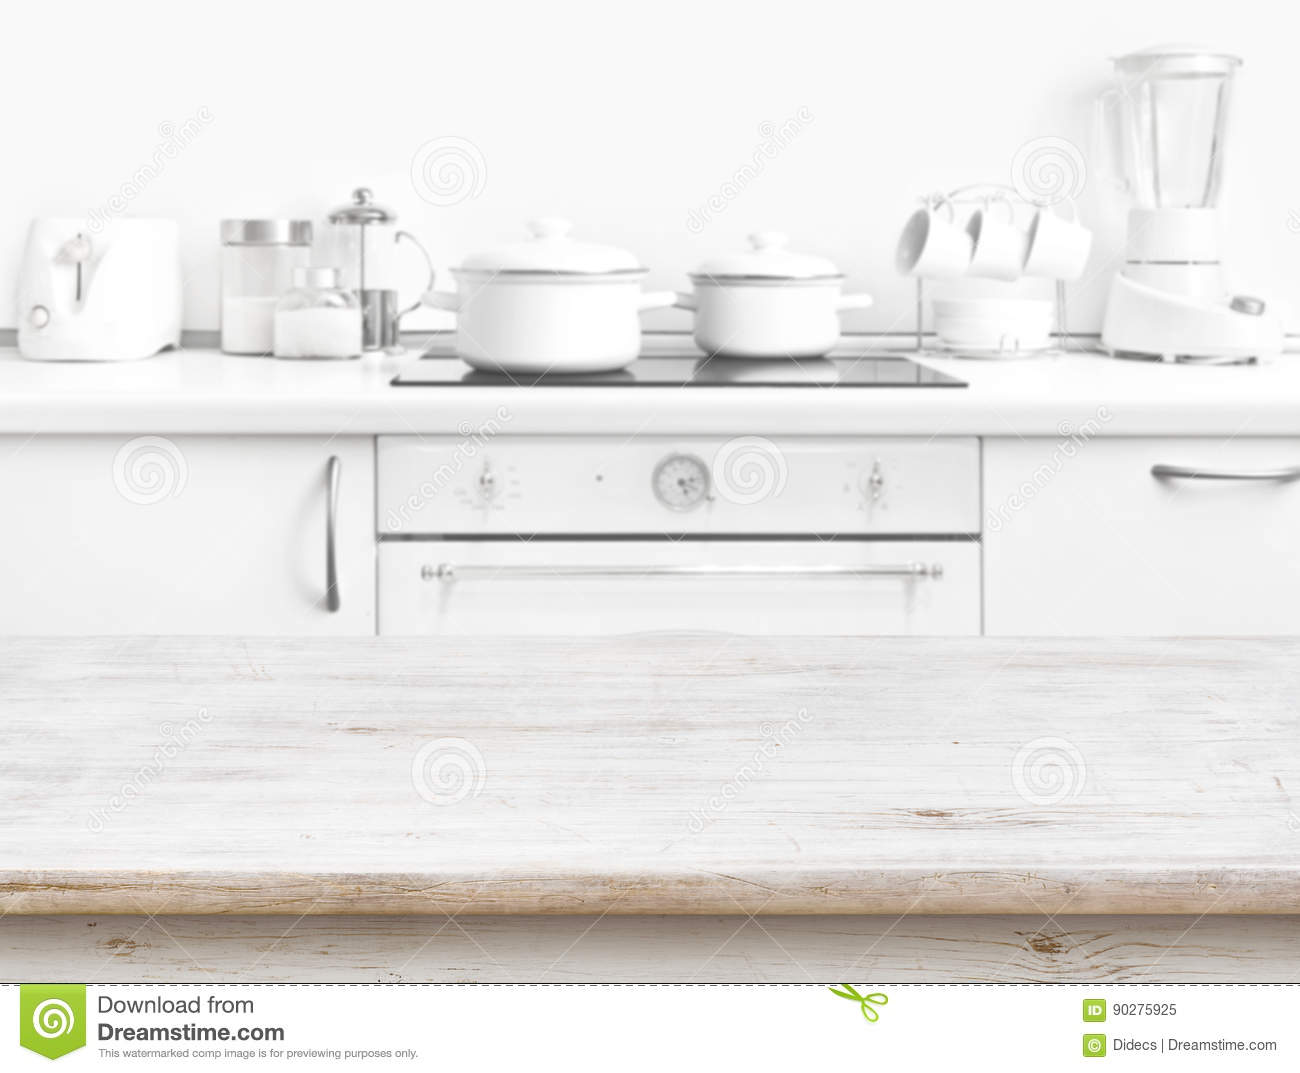 Surprising Wooden Table In Front Of Blurred White Kitchen Bench Gamerscity Chair Design For Home Gamerscityorg